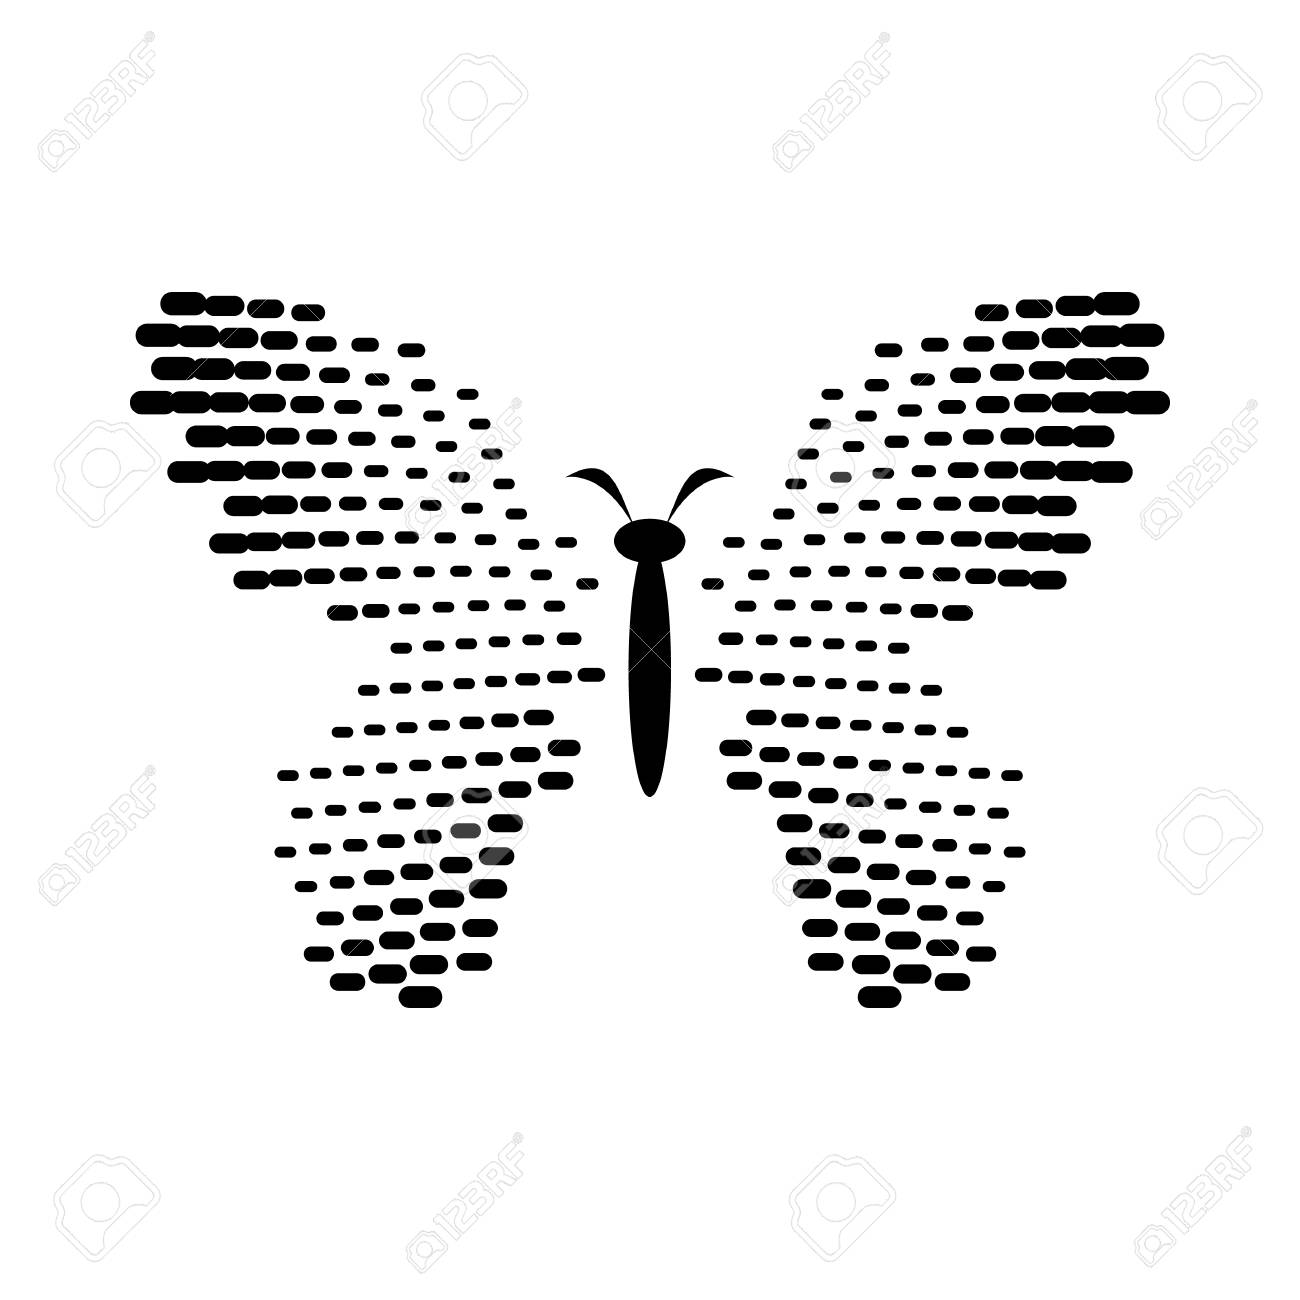 Butterfly with dot wings icon in simple style isolated on white butterfly with dot wings icon in simple style isolated on white background insect symbol stock biocorpaavc Images